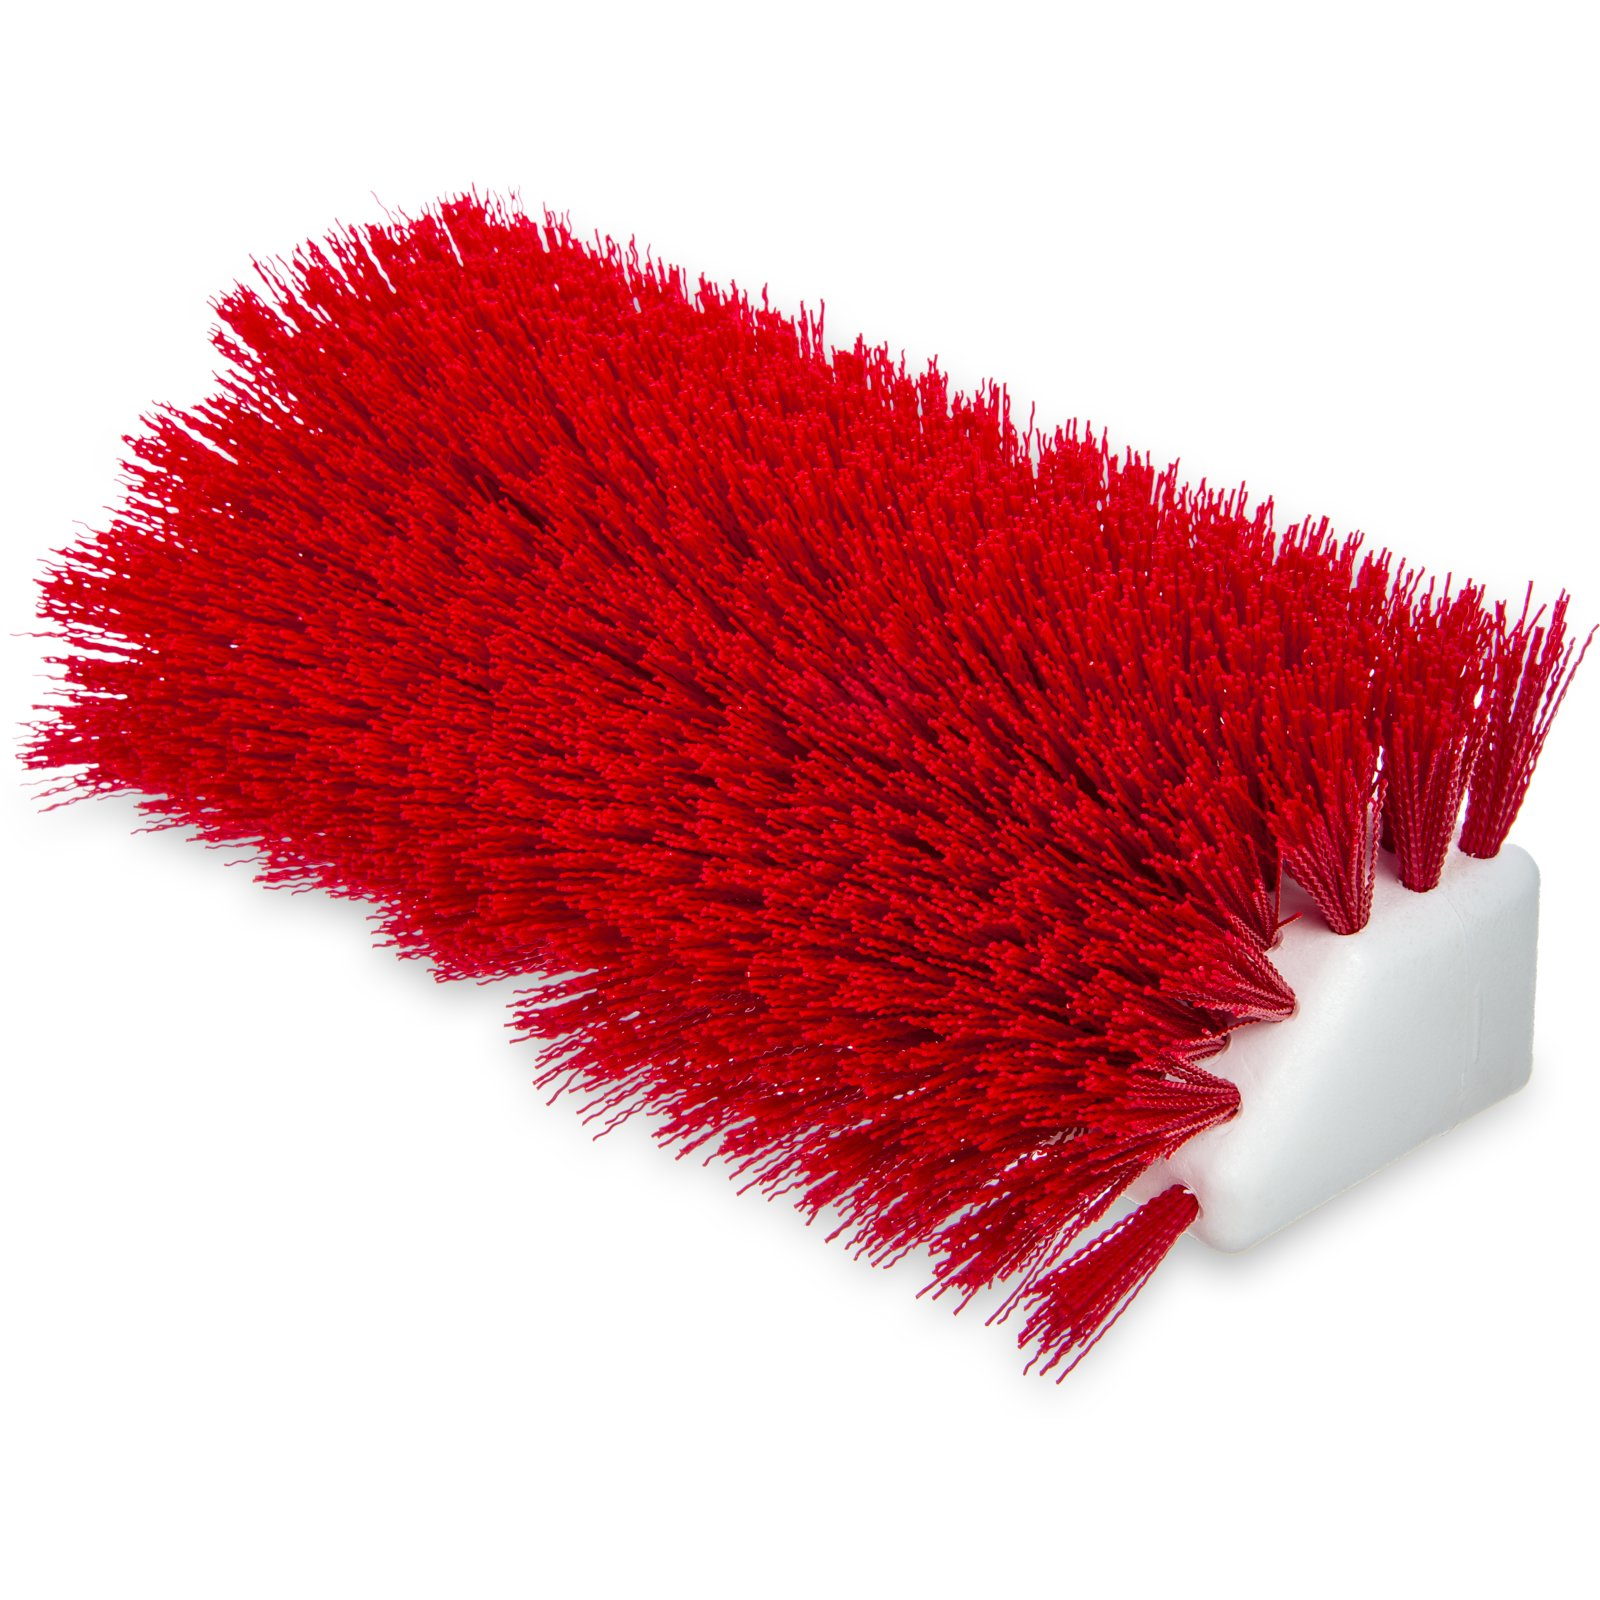 "BRUSH FLOOR 10"" SCRUB RED"